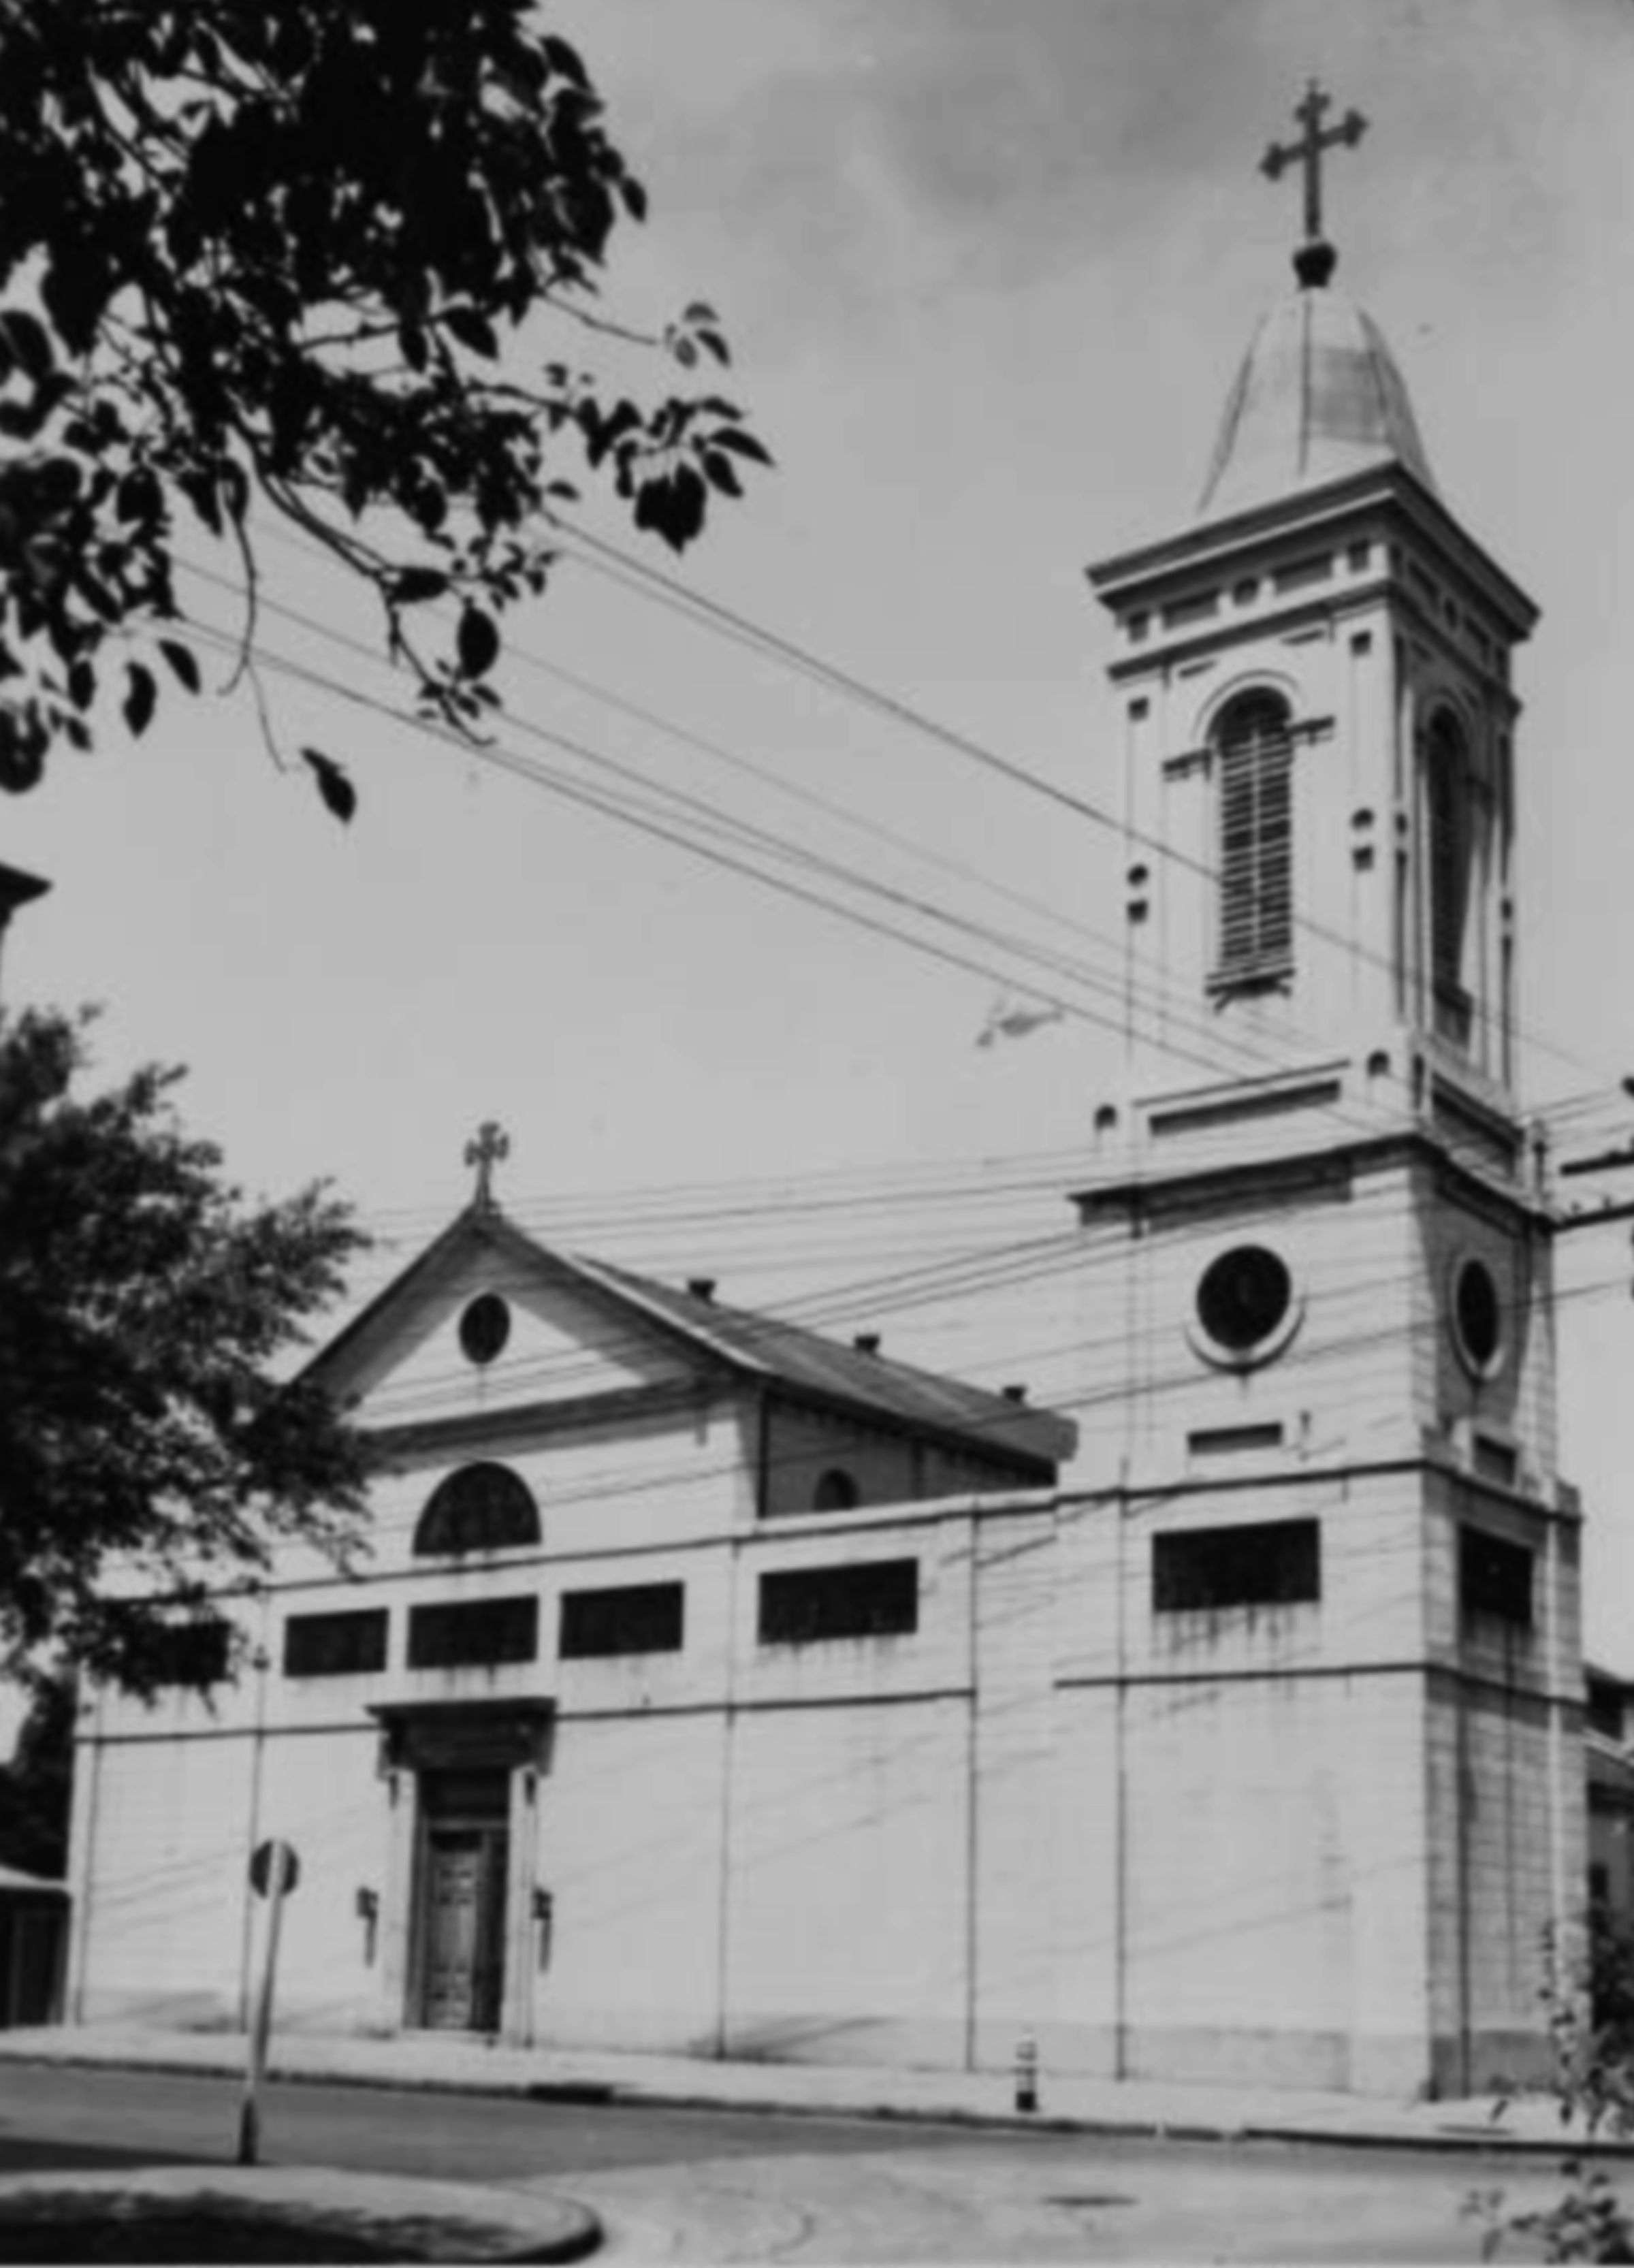 NewOrleansNeighborhoods/St.AugustineChurch1930s.jpg